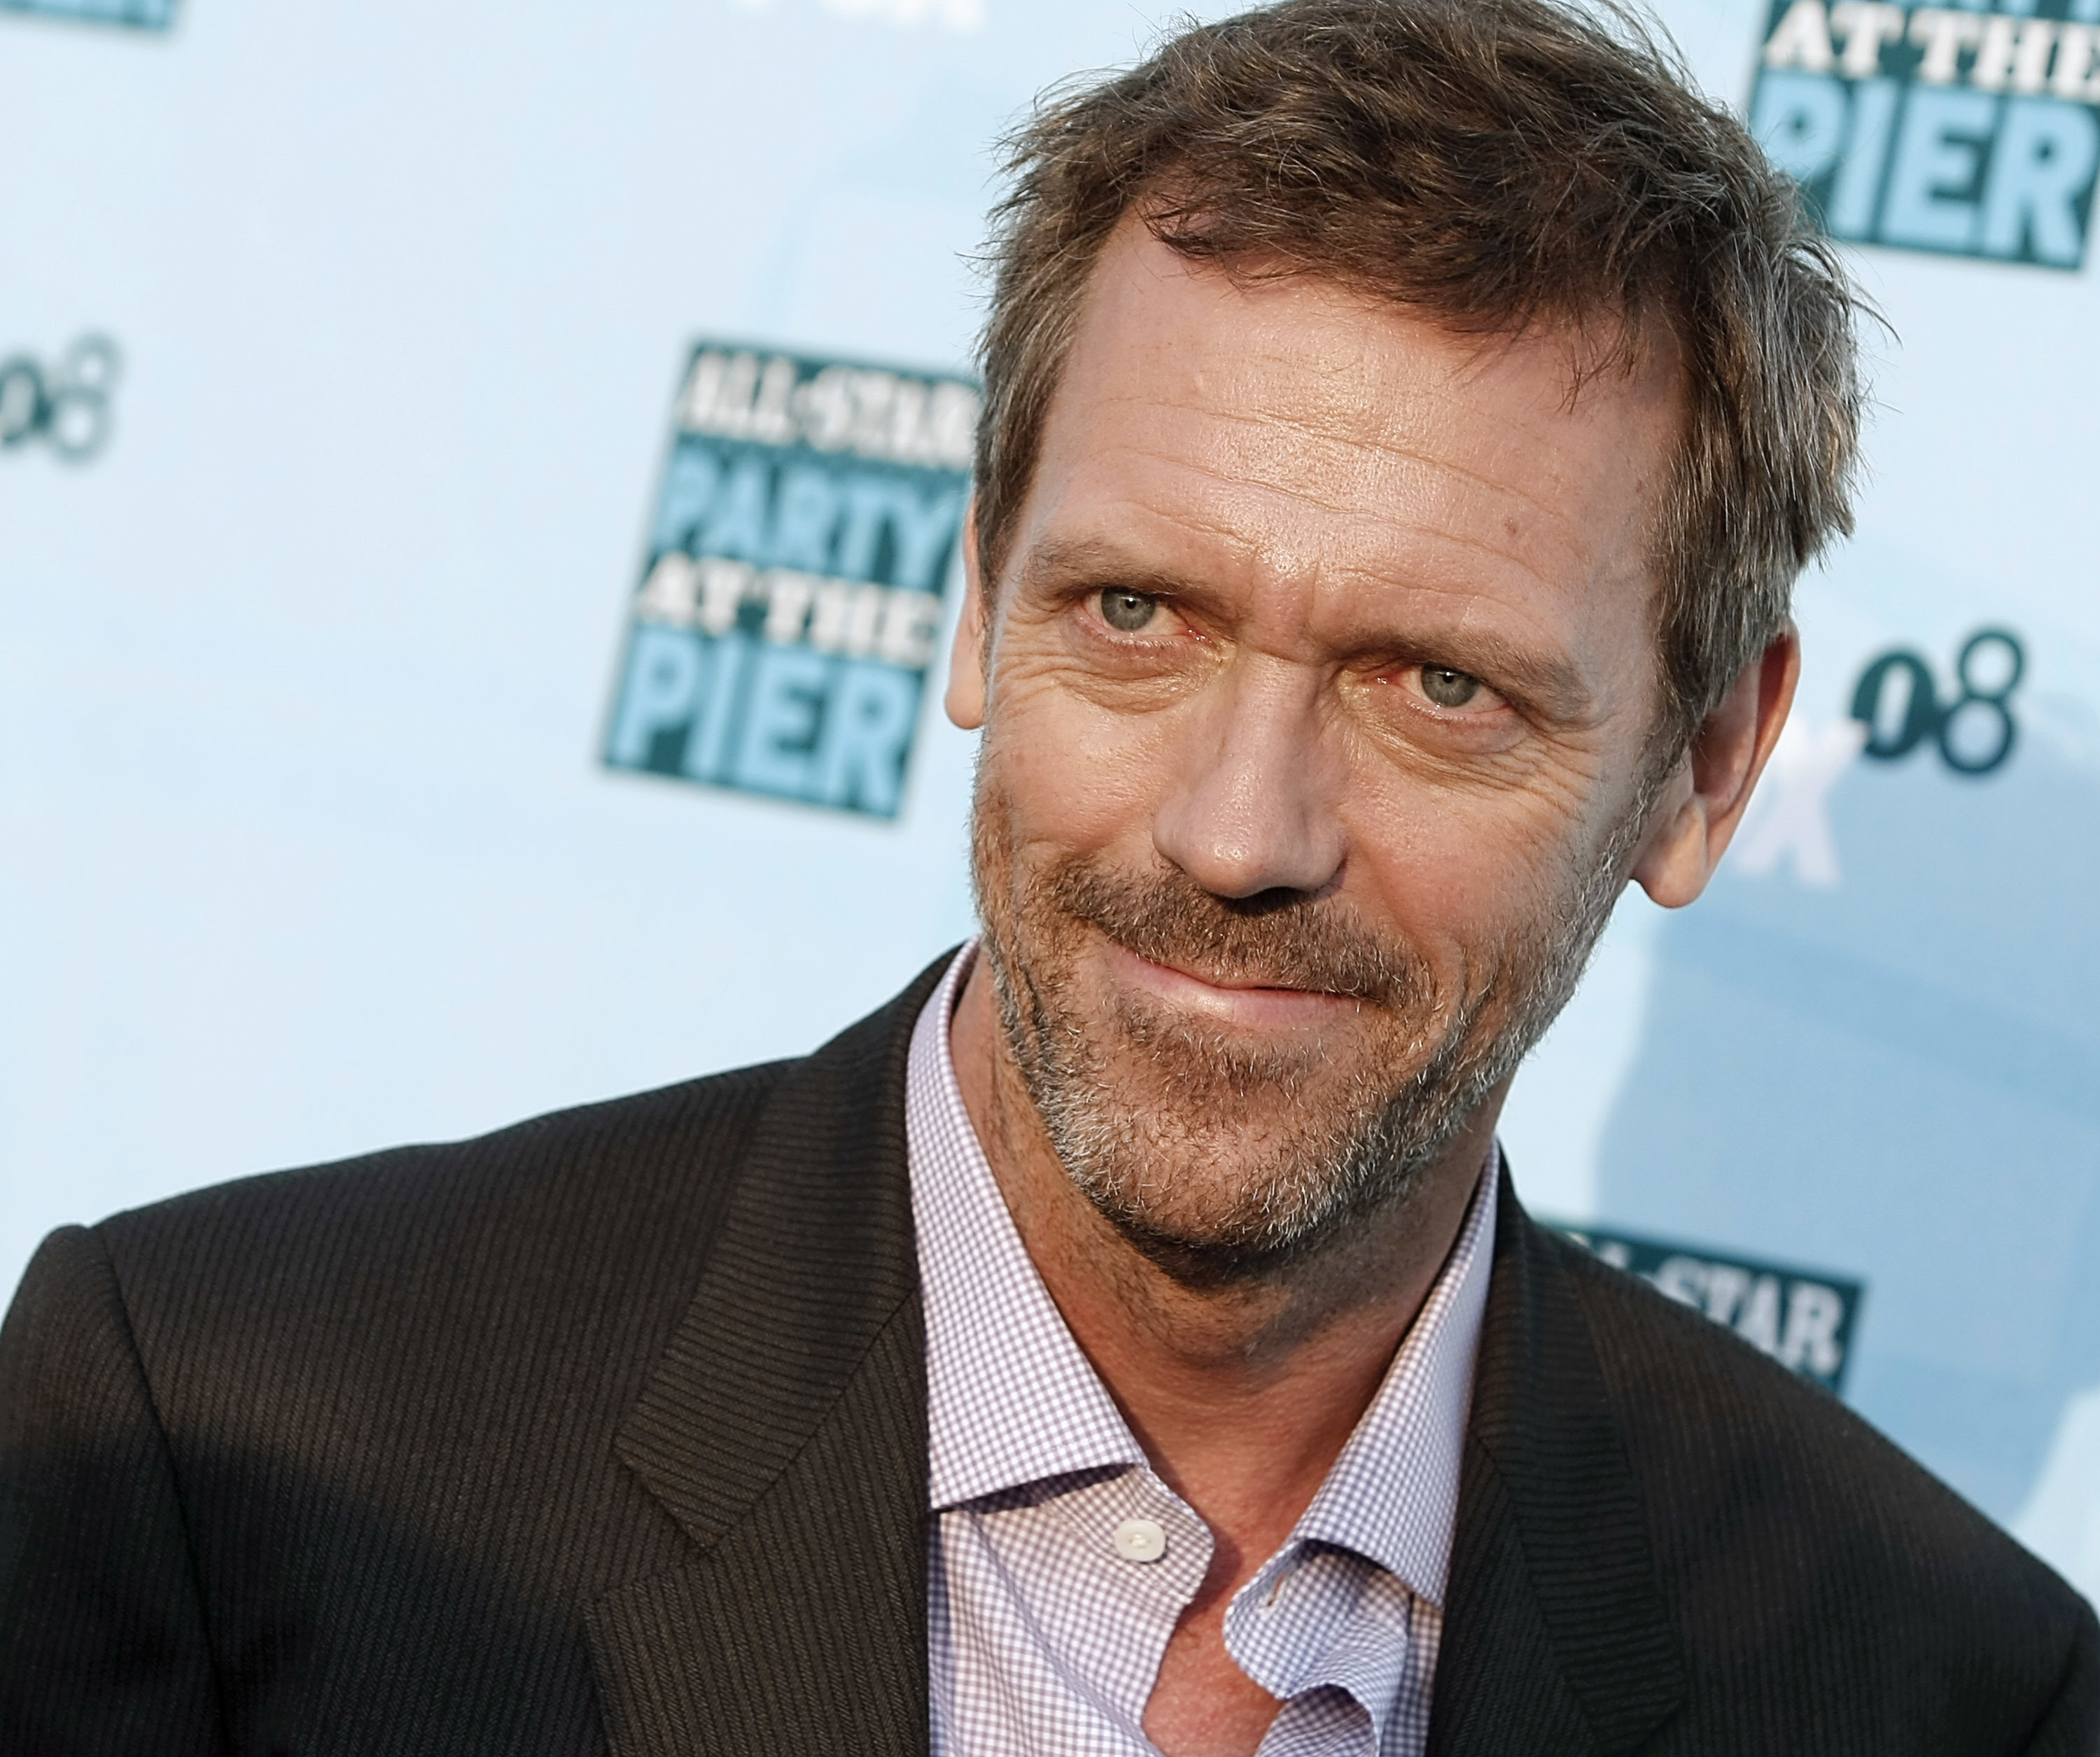 TV Hugh laurie gregory HD Wallpaper